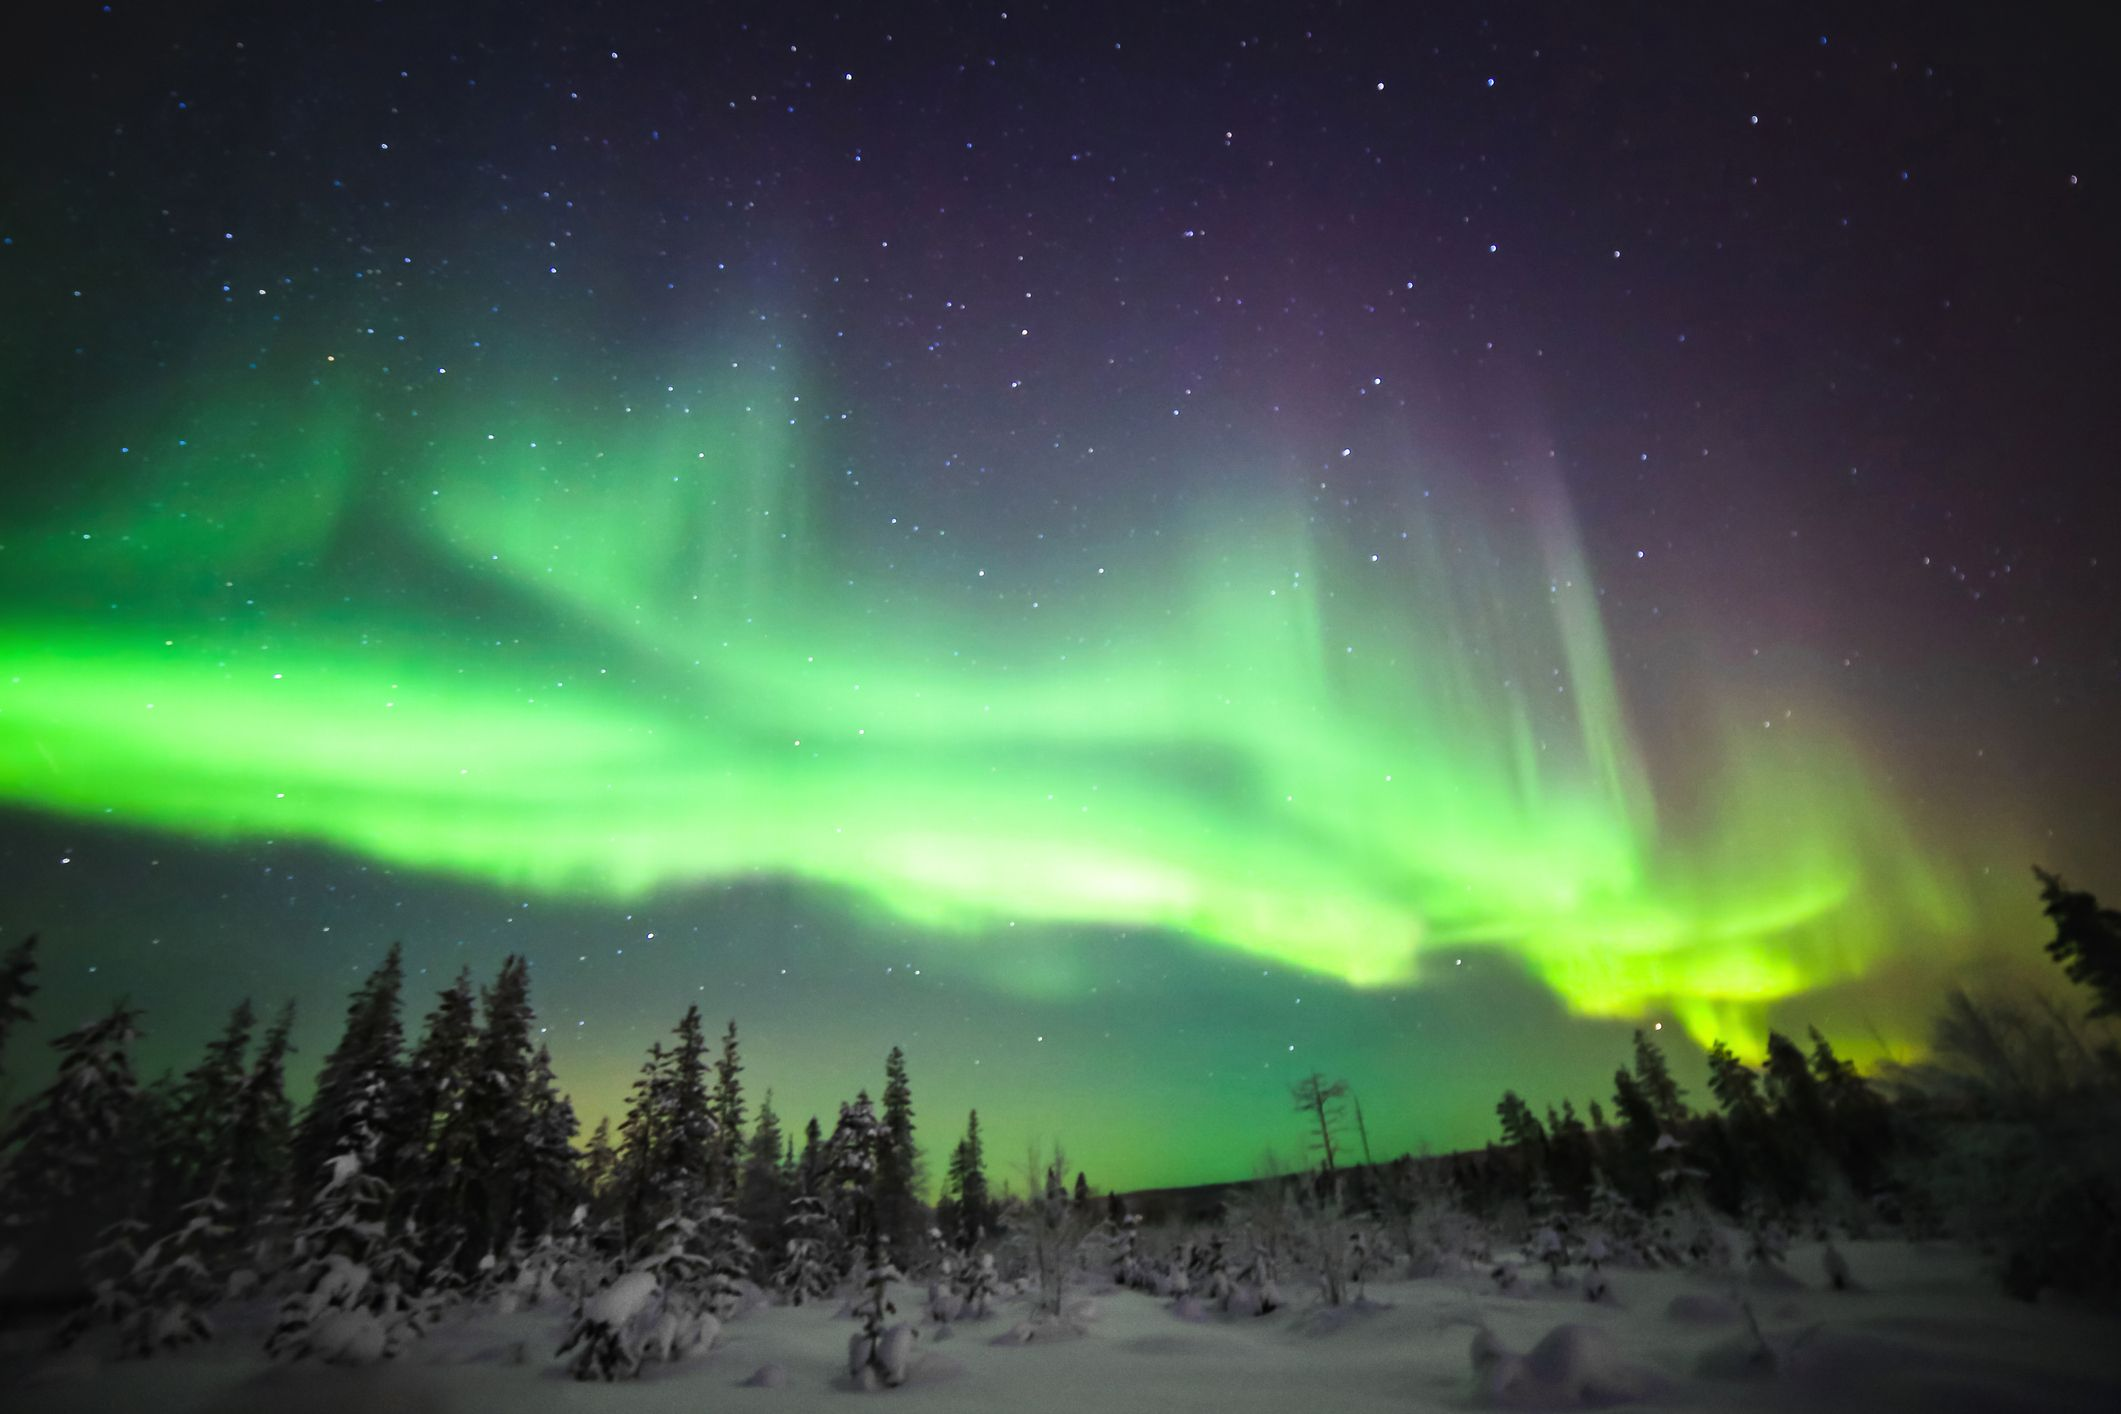 Northern lights, also known as Aurora borealis in Lapland, Finland